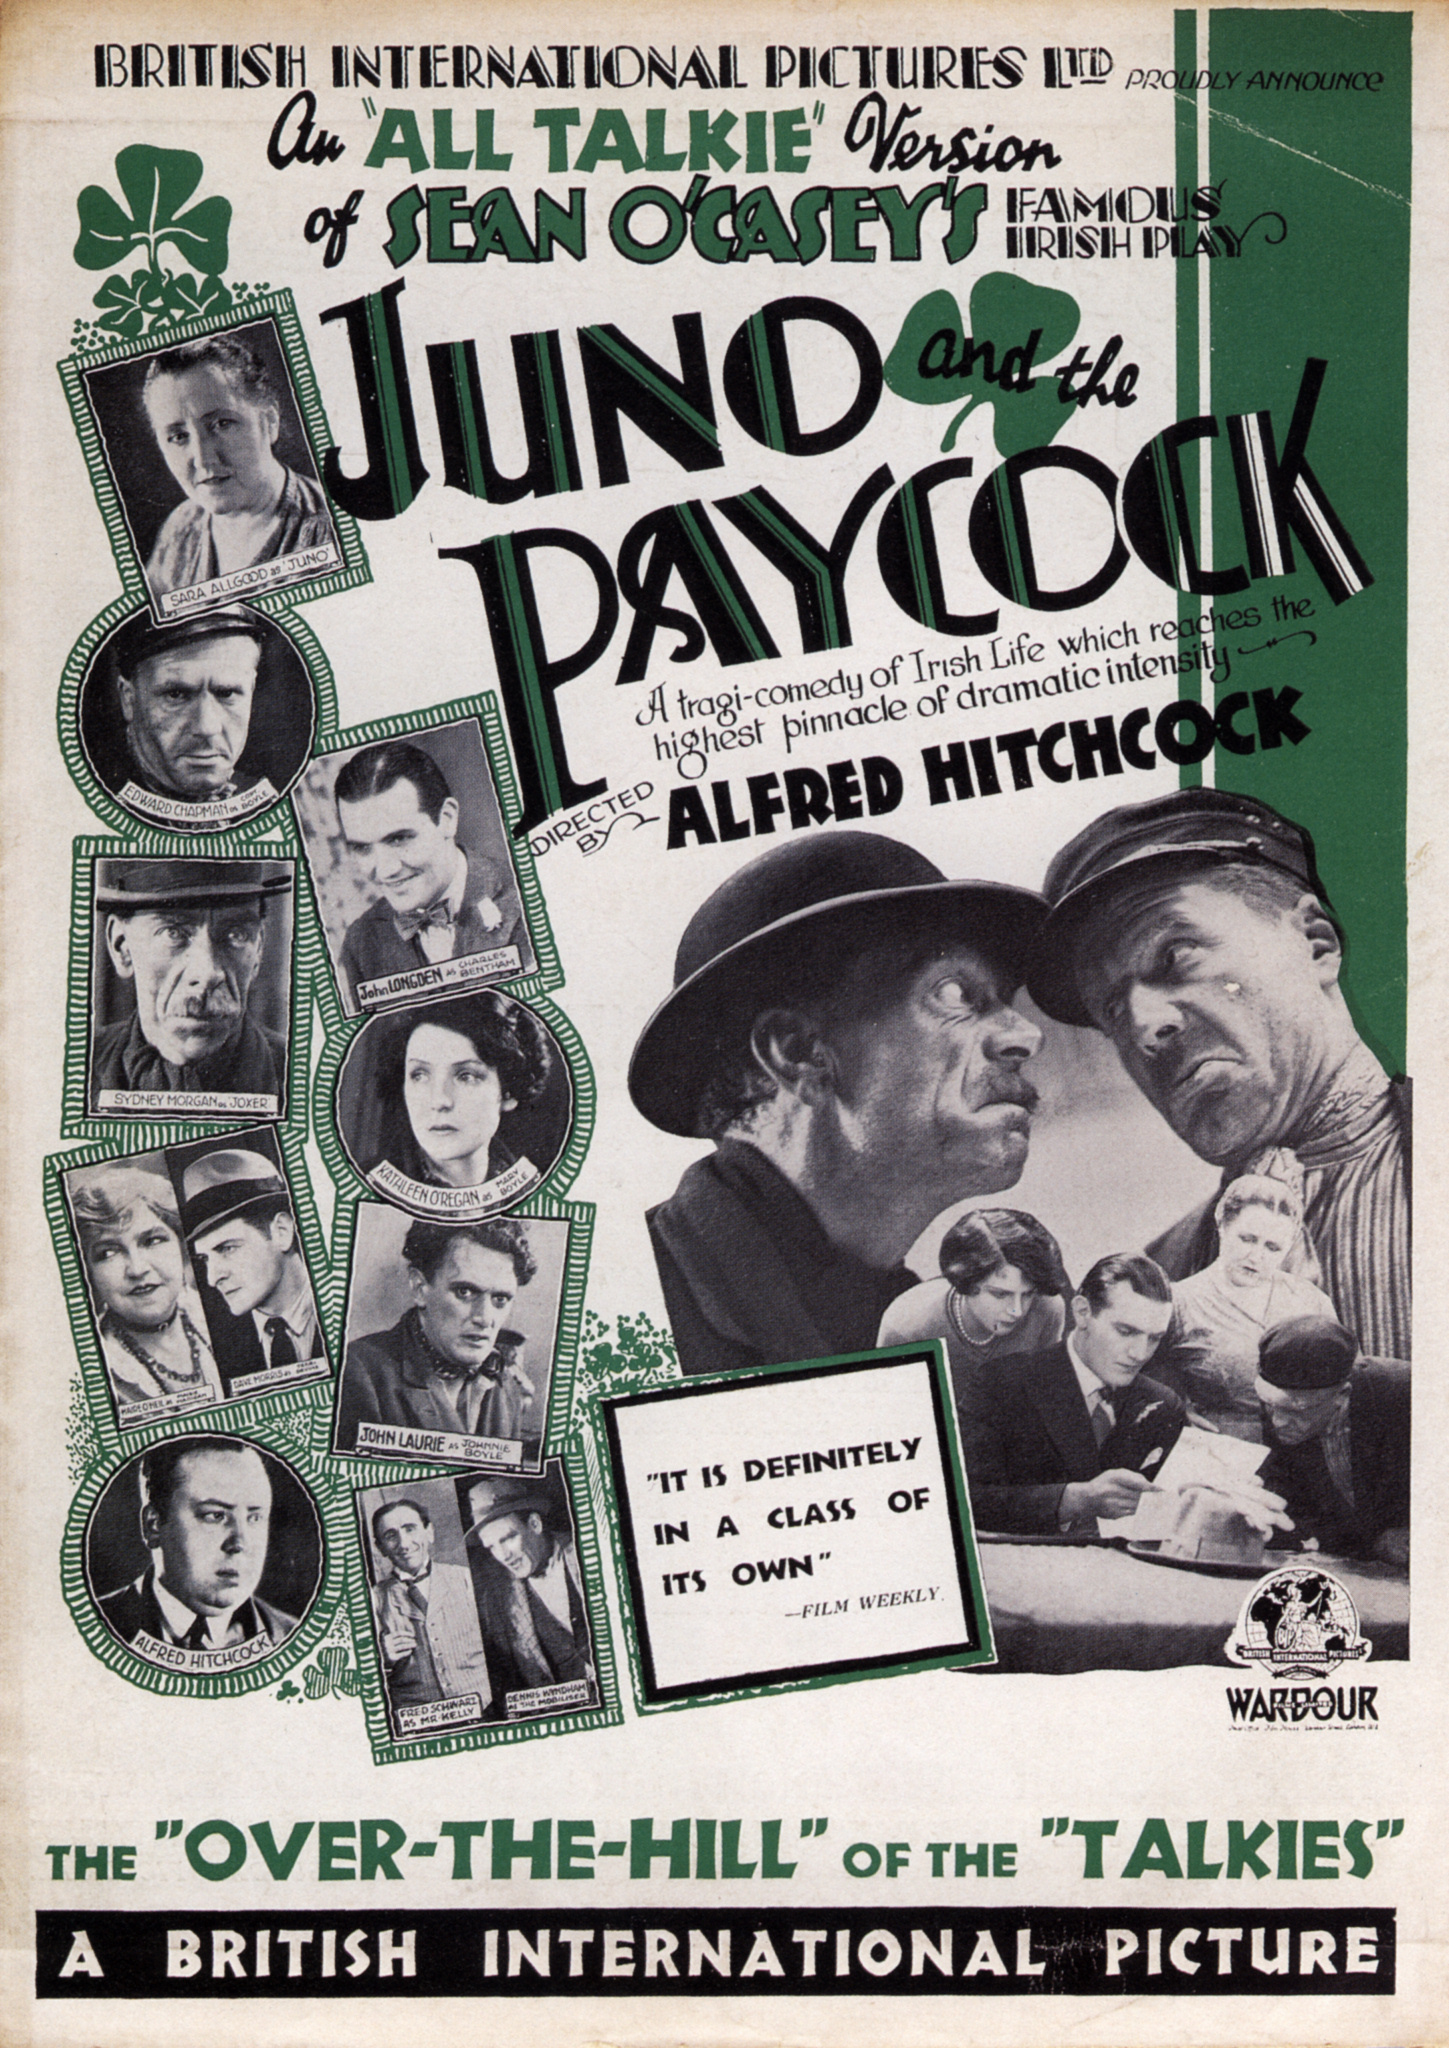 Juno and the Paycock (1930, dir. Alfred Hitchcock) UK pressbook